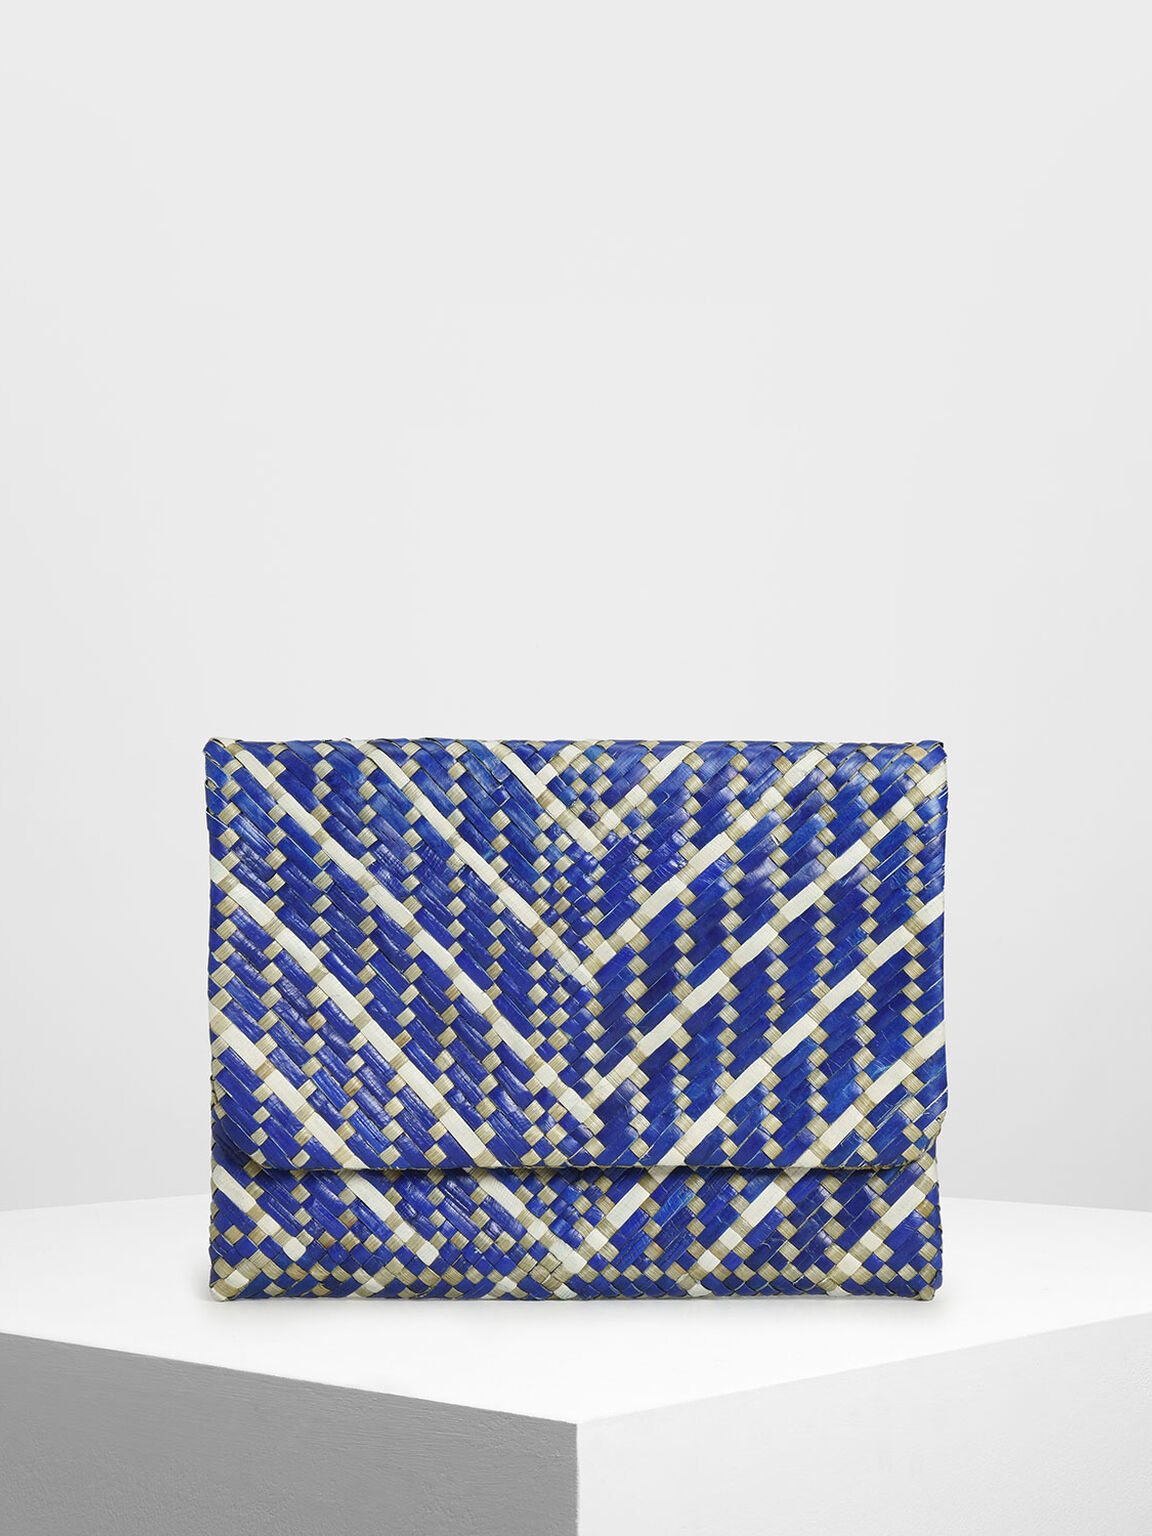 CK-IWD-CLUTCH Handwoven Two-Tone Banig Front Flap Clutch